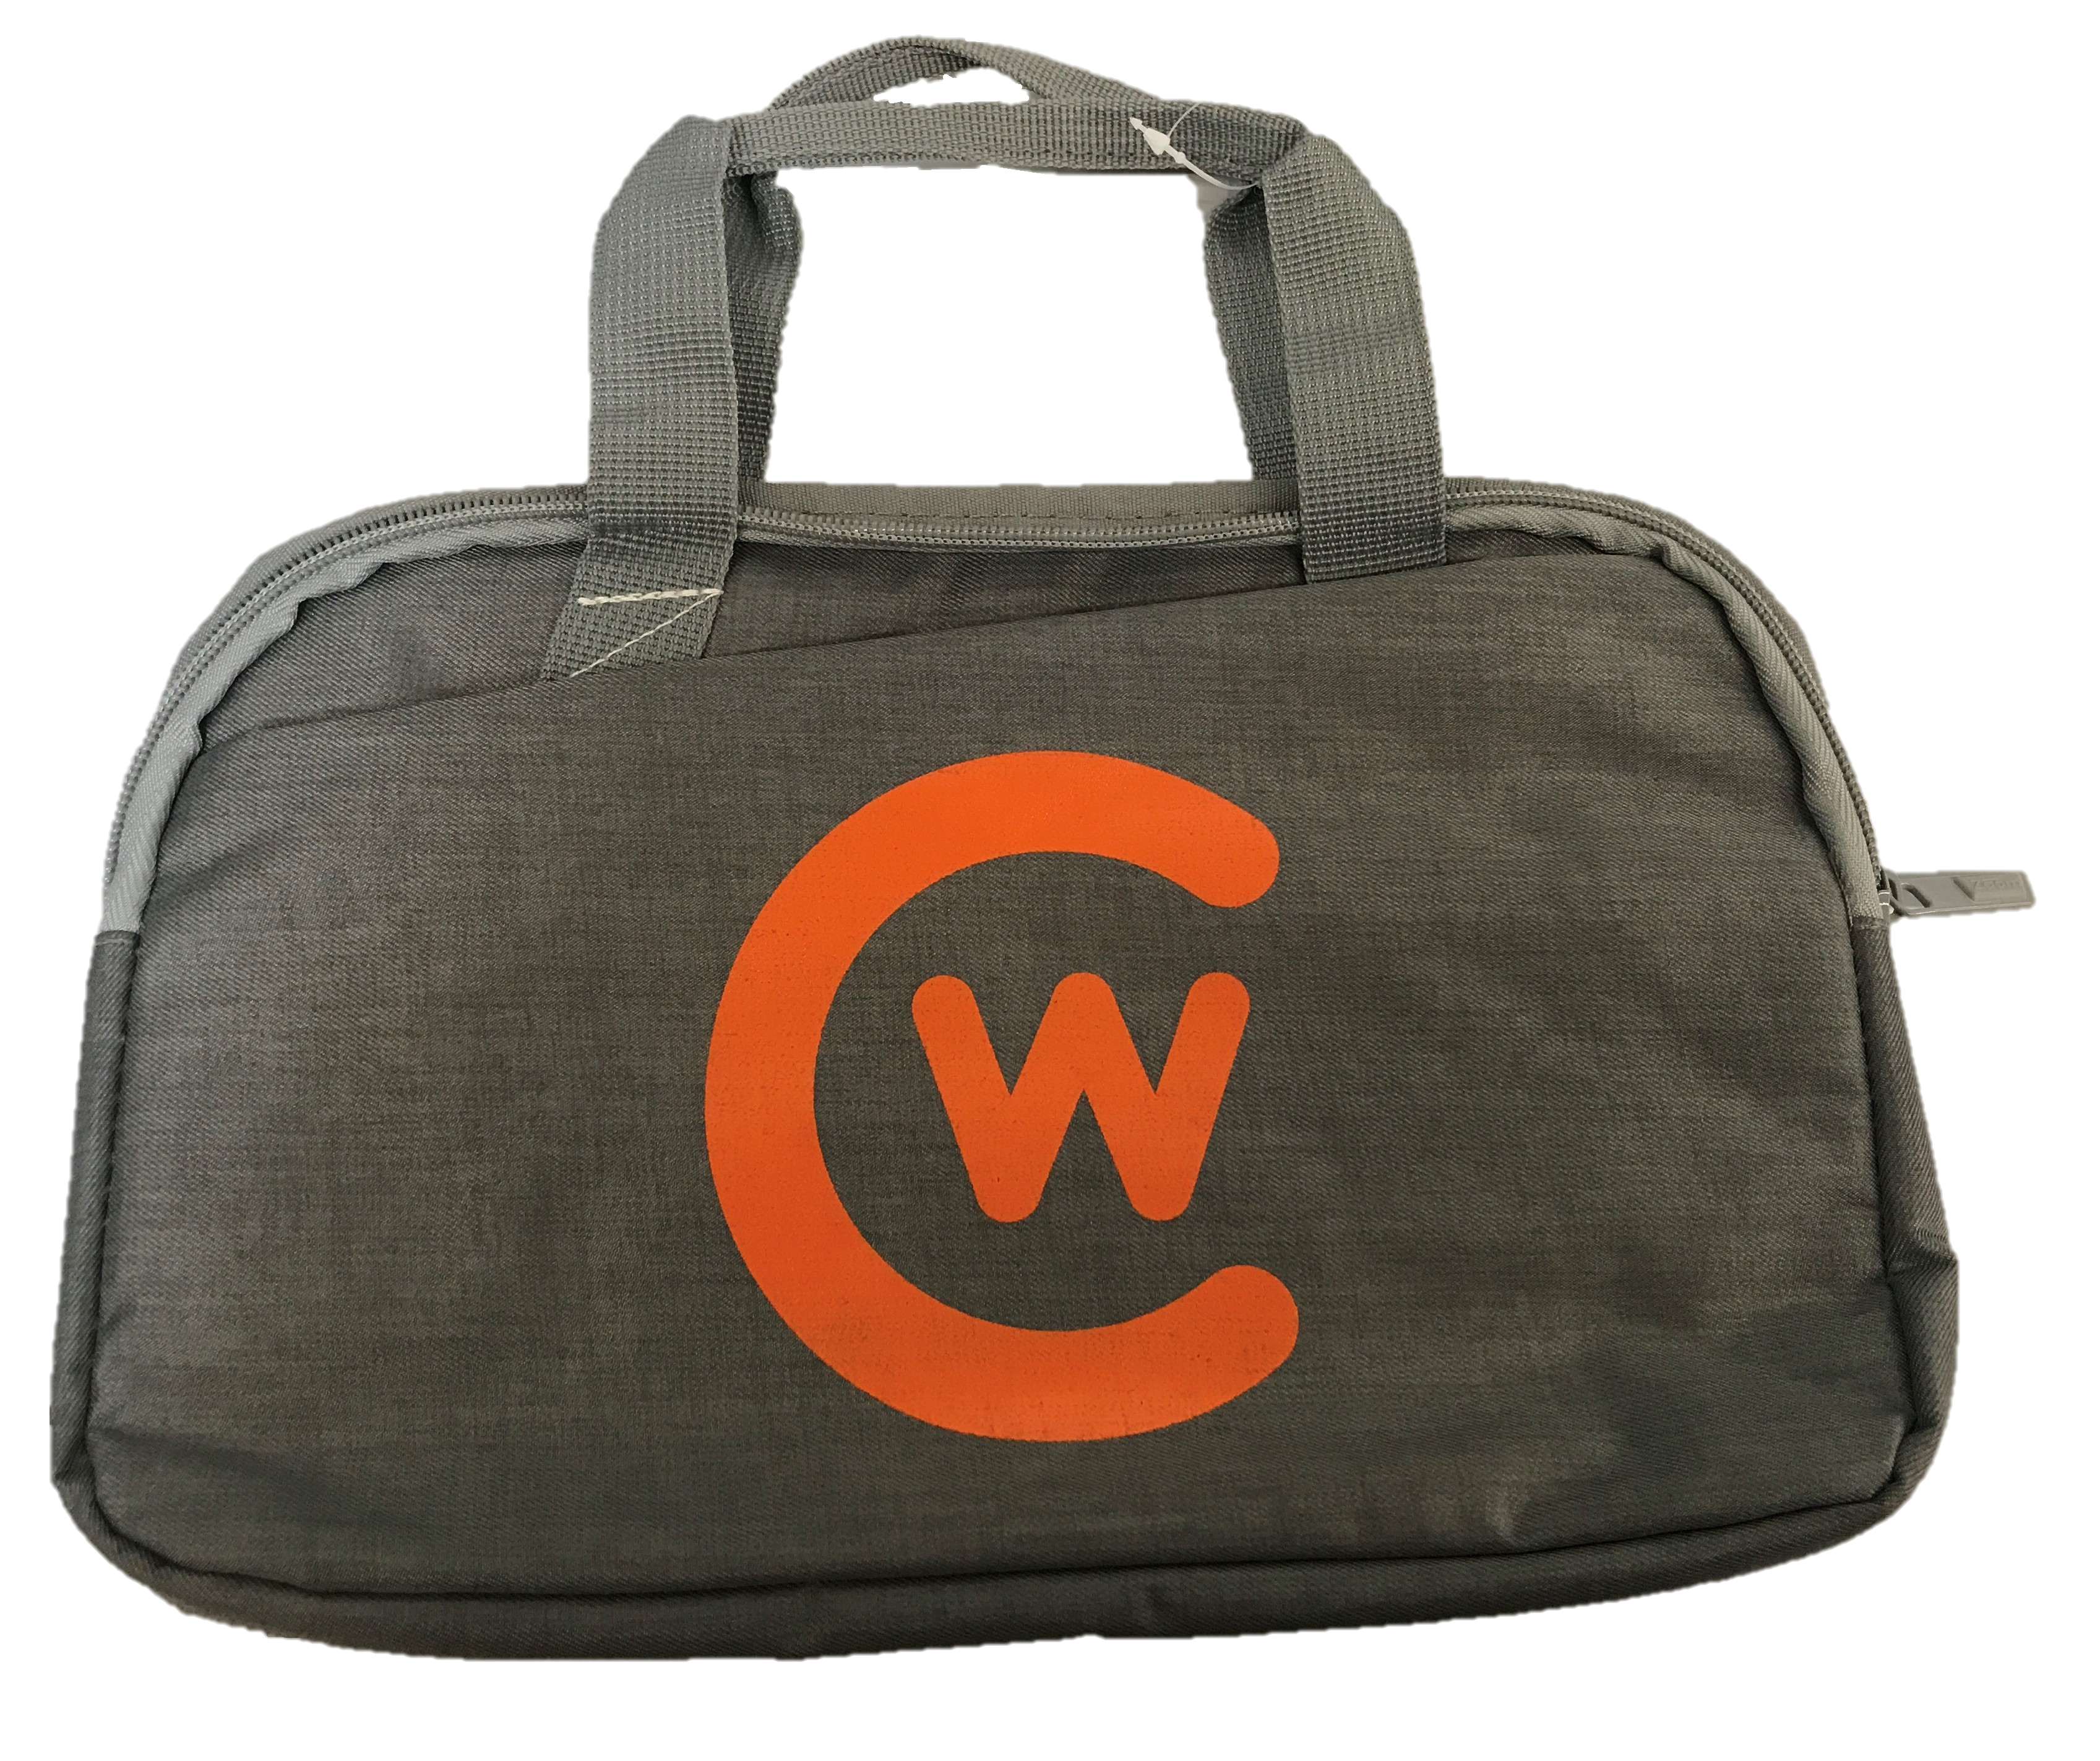 Gray CW Logo Tablet Sleeve